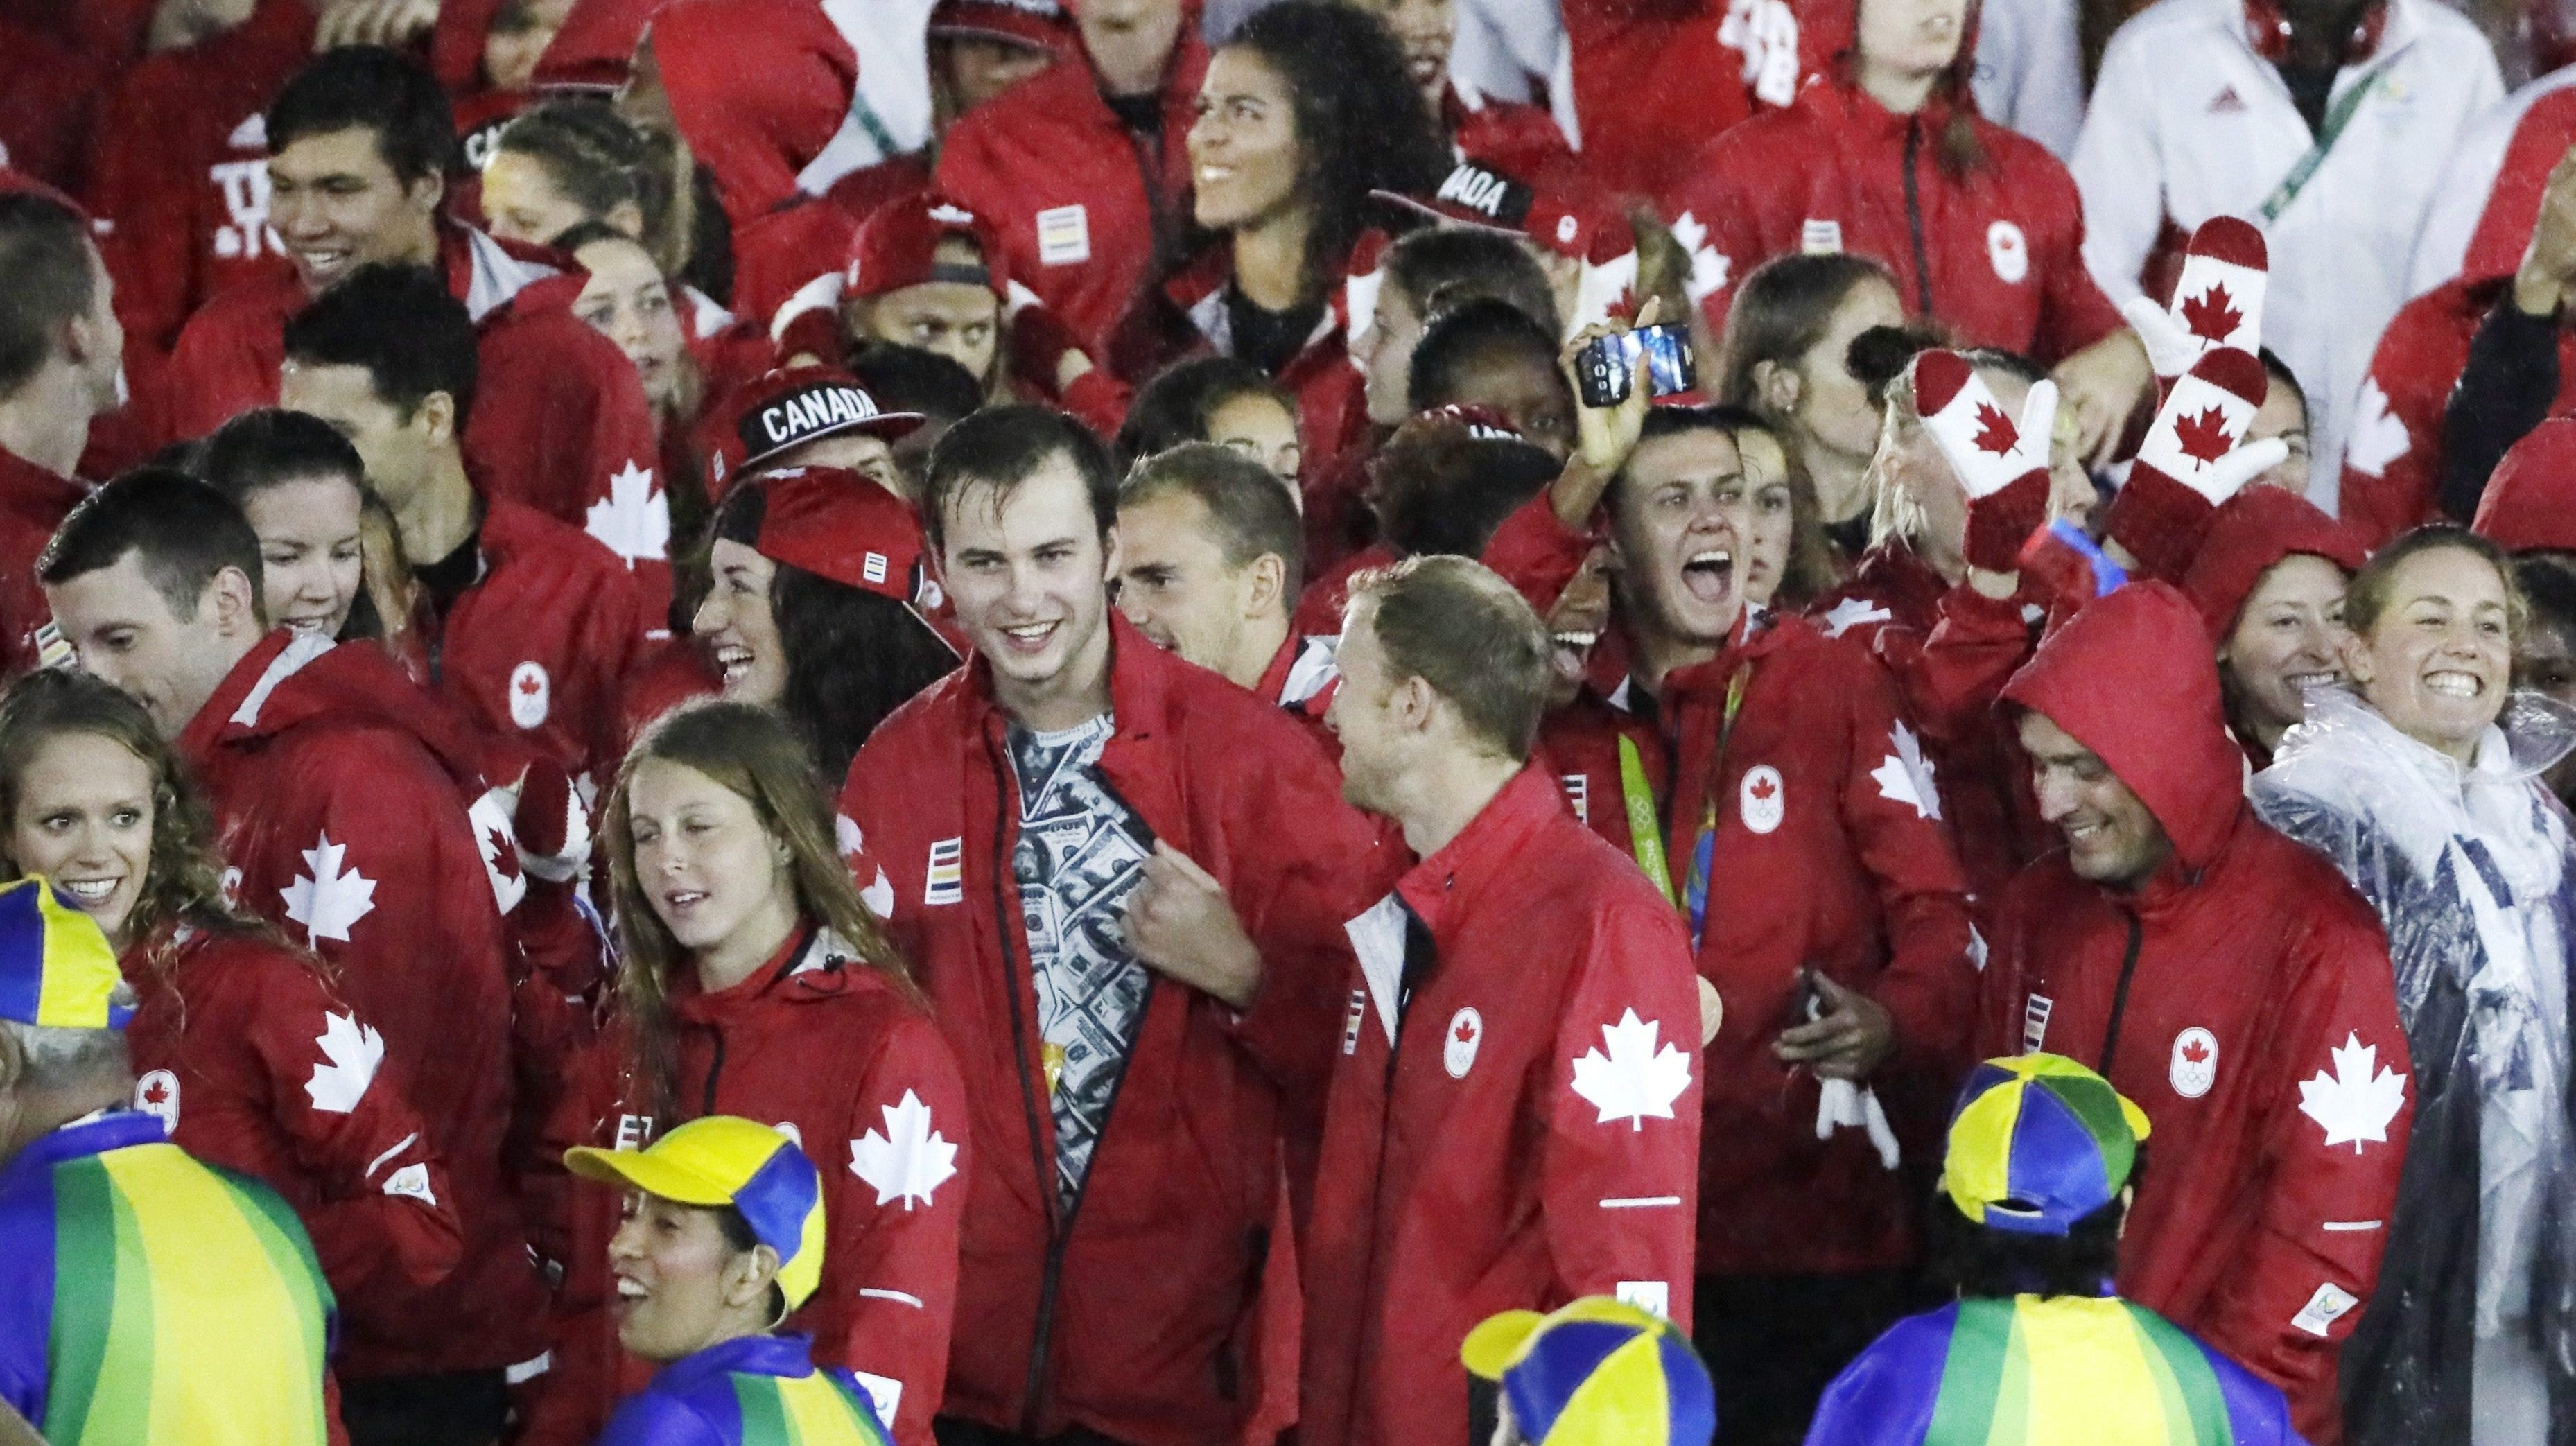 Canadian athletes celebrate during the closing ceremony in the Maracana stadium at the 2016 Summer Olympics in Rio de Janeiro, Brazil, Sunday, Aug. 21, 2016. (AP Photo/Mark Humphrey)